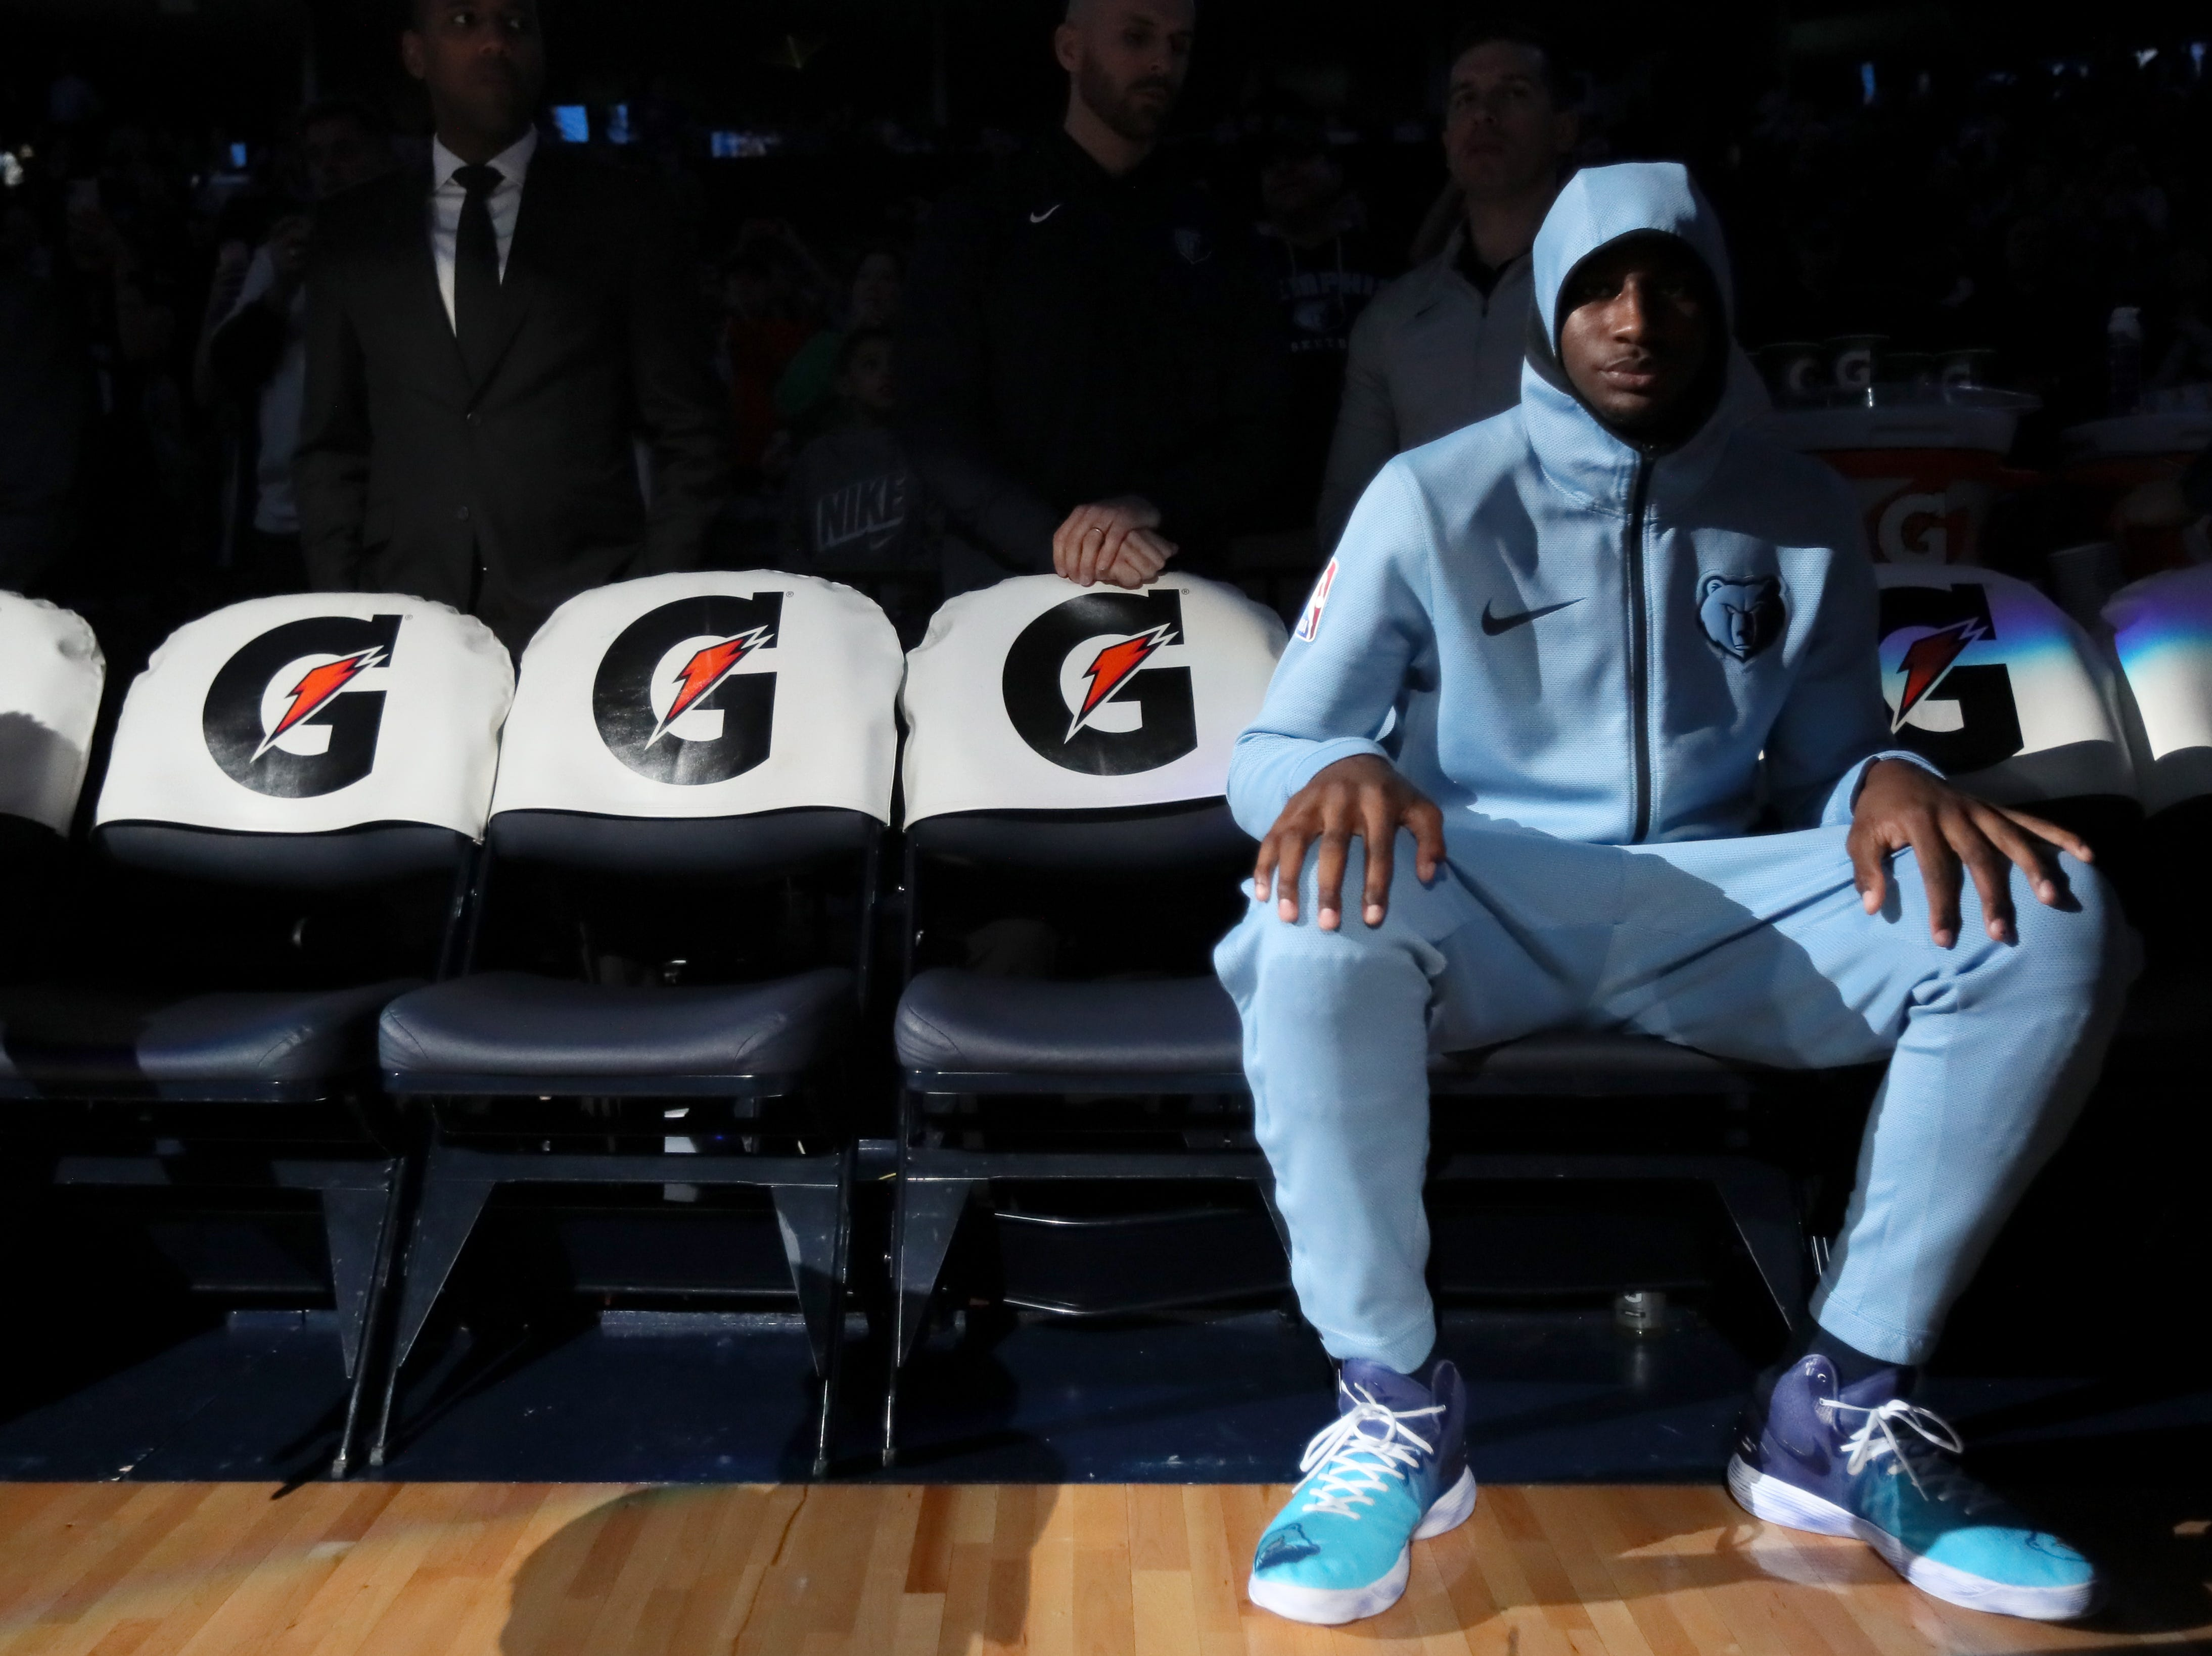 Memphis Grizzlies forward Jaren Jackson Jr. waits to be introduced before their game against the Cleveland Cavaliers on Wednesday, Dec. 26, 2018.